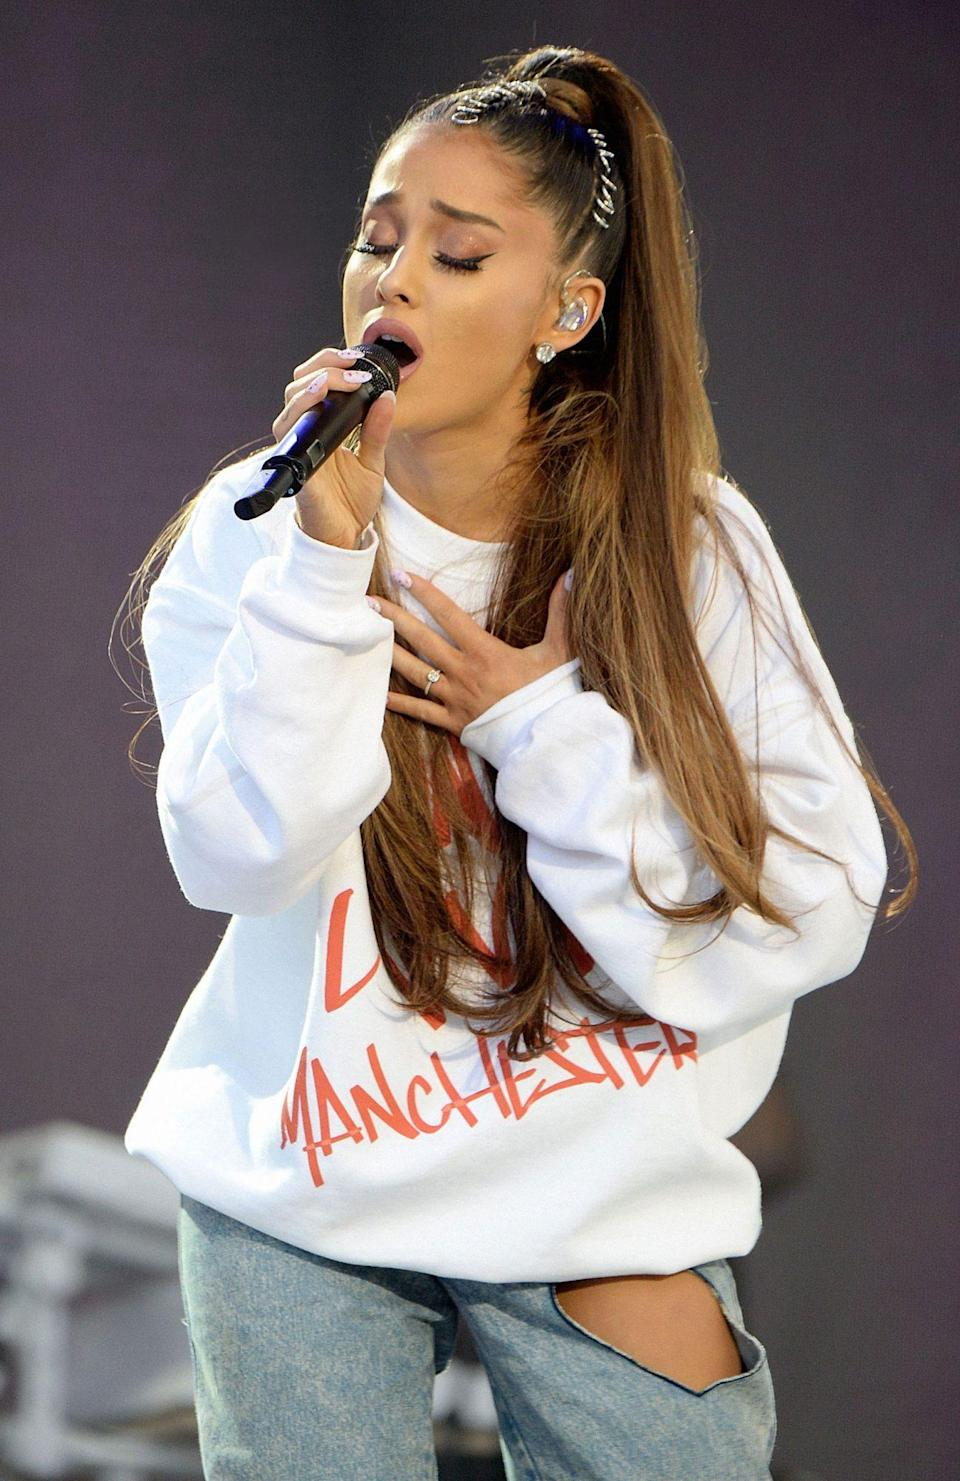 """<p>After the deadly <a href=""""https://people.com/crime/ariana-grande-concert-manchester-arena-incident/"""" rel=""""nofollow noopener"""" target=""""_blank"""" data-ylk=""""slk:May 2017 terrorist attack"""" class=""""link rapid-noclick-resp"""">May 2017 terrorist attack</a> that left 22 dead and 59 injured at Manchester Arena in the U.K. where Grande was performing a concert, the star vowed to come back to organize a <a href=""""https://people.com/music/ariana-grande-letter-fans-manchester-concert-attack/"""" rel=""""nofollow noopener"""" target=""""_blank"""" data-ylk=""""slk:benefit concert to honor and raise money for the victims"""" class=""""link rapid-noclick-resp"""">benefit concert to honor and raise money for the victims</a> and their families. She made it happen a month later and enlisted friends Miley Cyrus, Pharrell Williams, Little Mix, the Black Eyed Peas, Justin Bieber and more to play at her <a href=""""https://people.com/music/ariana-grande-benefit-concert-photos/"""" rel=""""nofollow noopener"""" target=""""_blank"""" data-ylk=""""slk:One Love Manchester"""" class=""""link rapid-noclick-resp"""">One Love Manchester</a> show.</p>"""